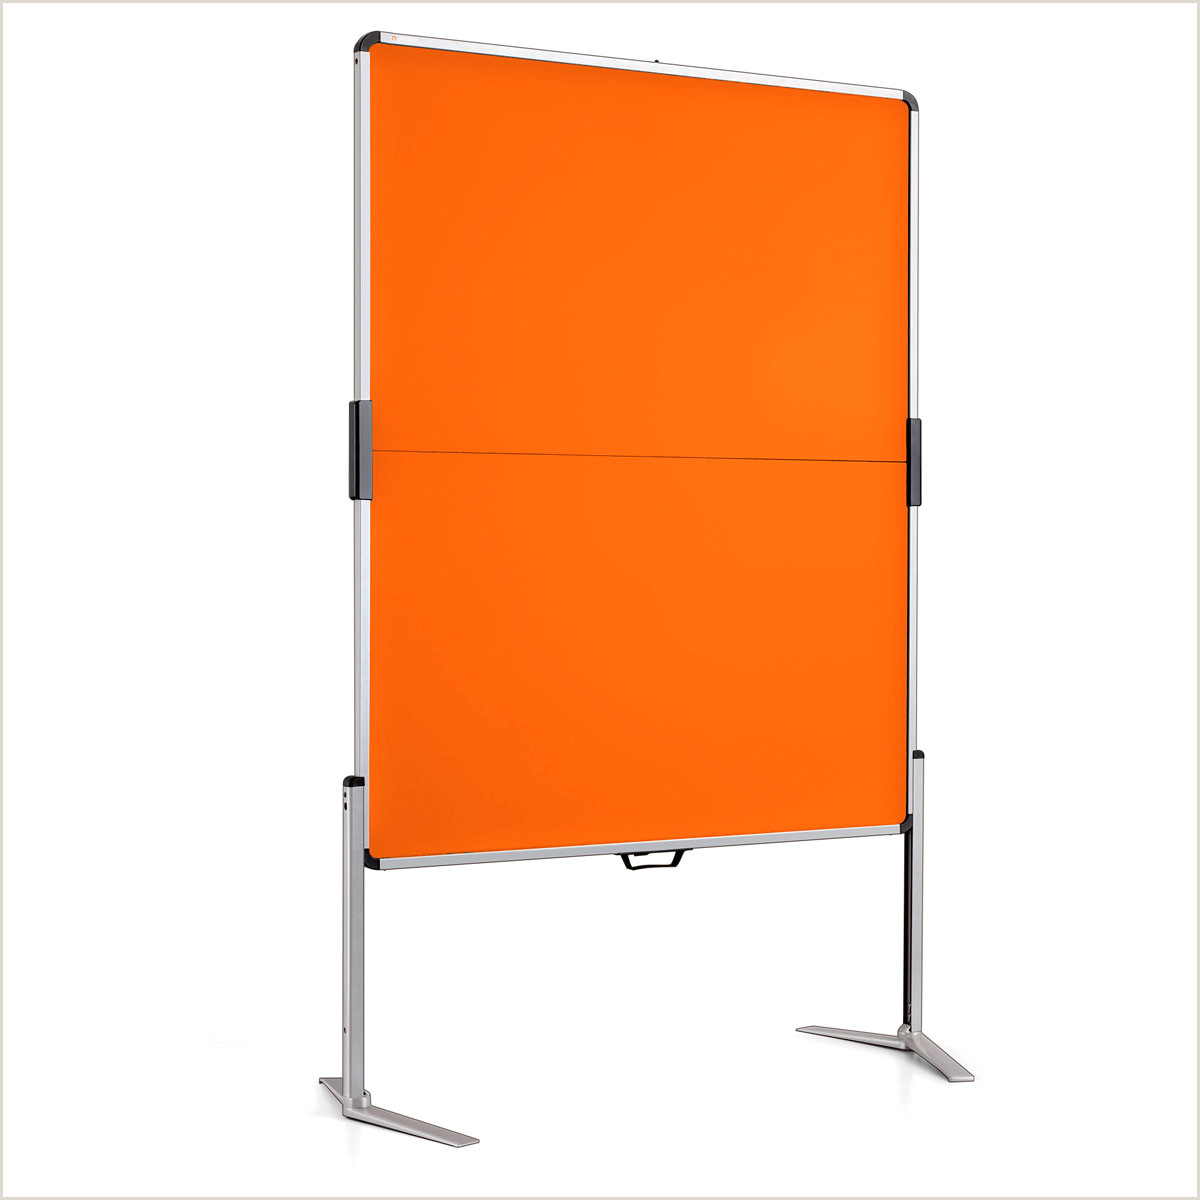 Roll Up Banner Size In Inches Classicpin Mc Pinboard – Felt Selection